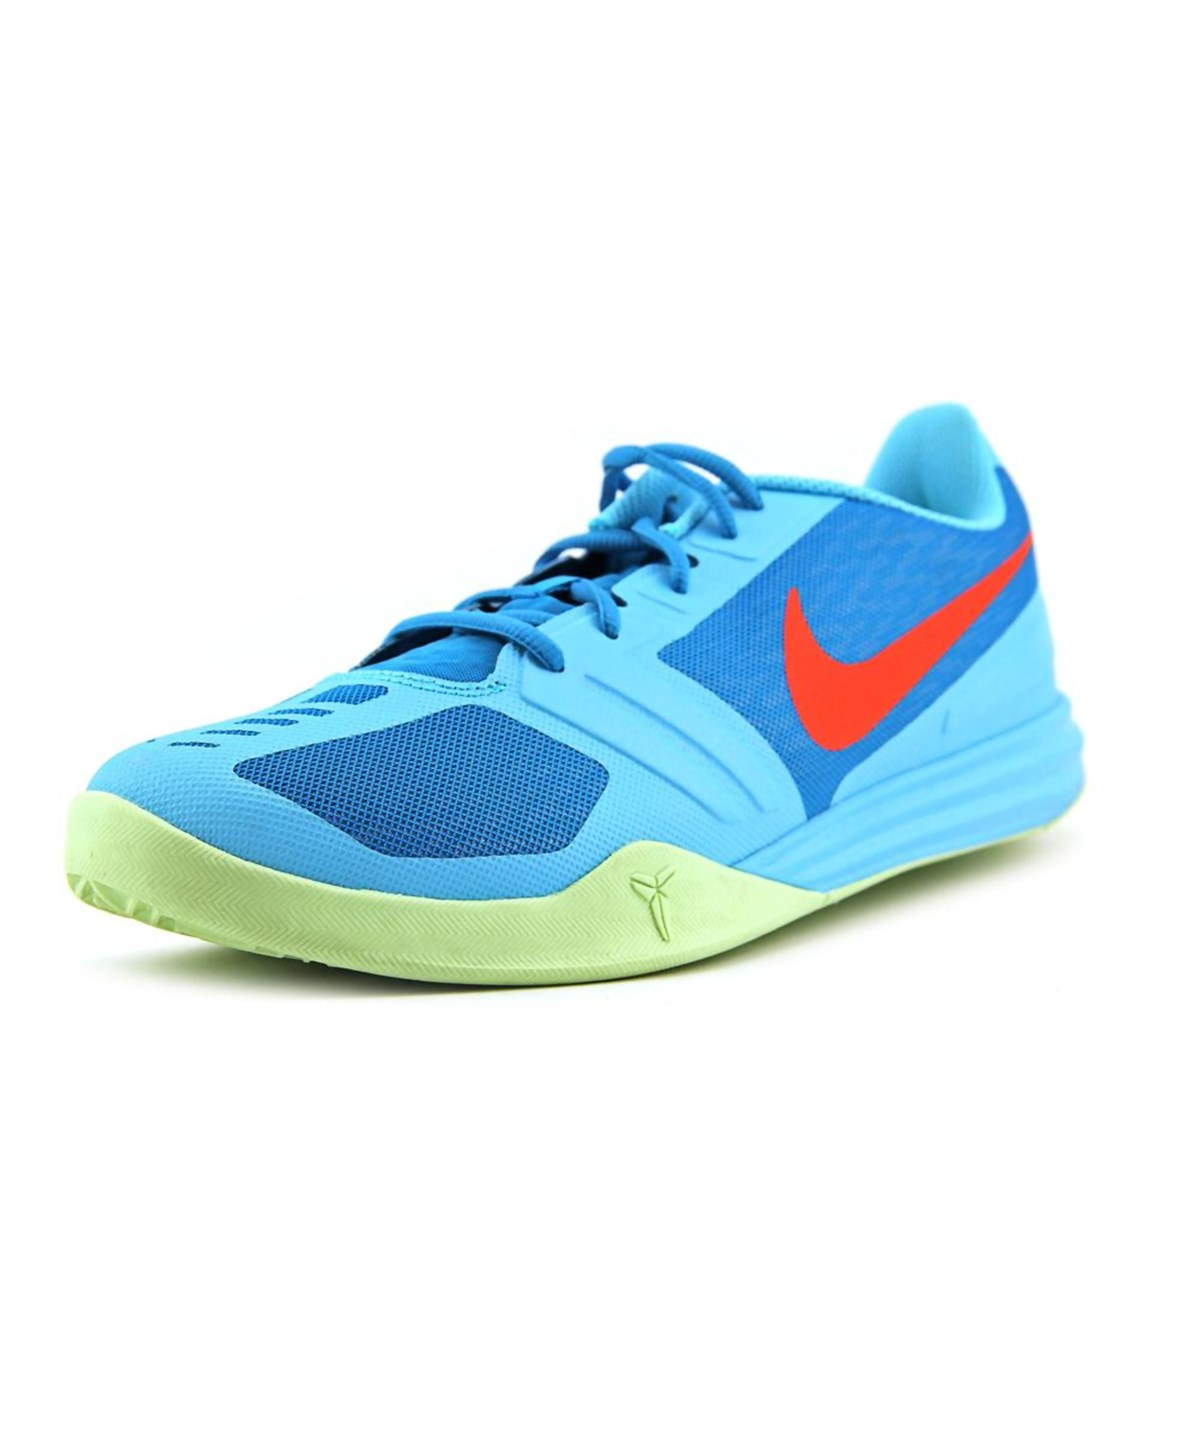 bf8f91777dfb Nike Kobe Mentality Men Round Toe Synthetic Blue Basketball Shoe ...